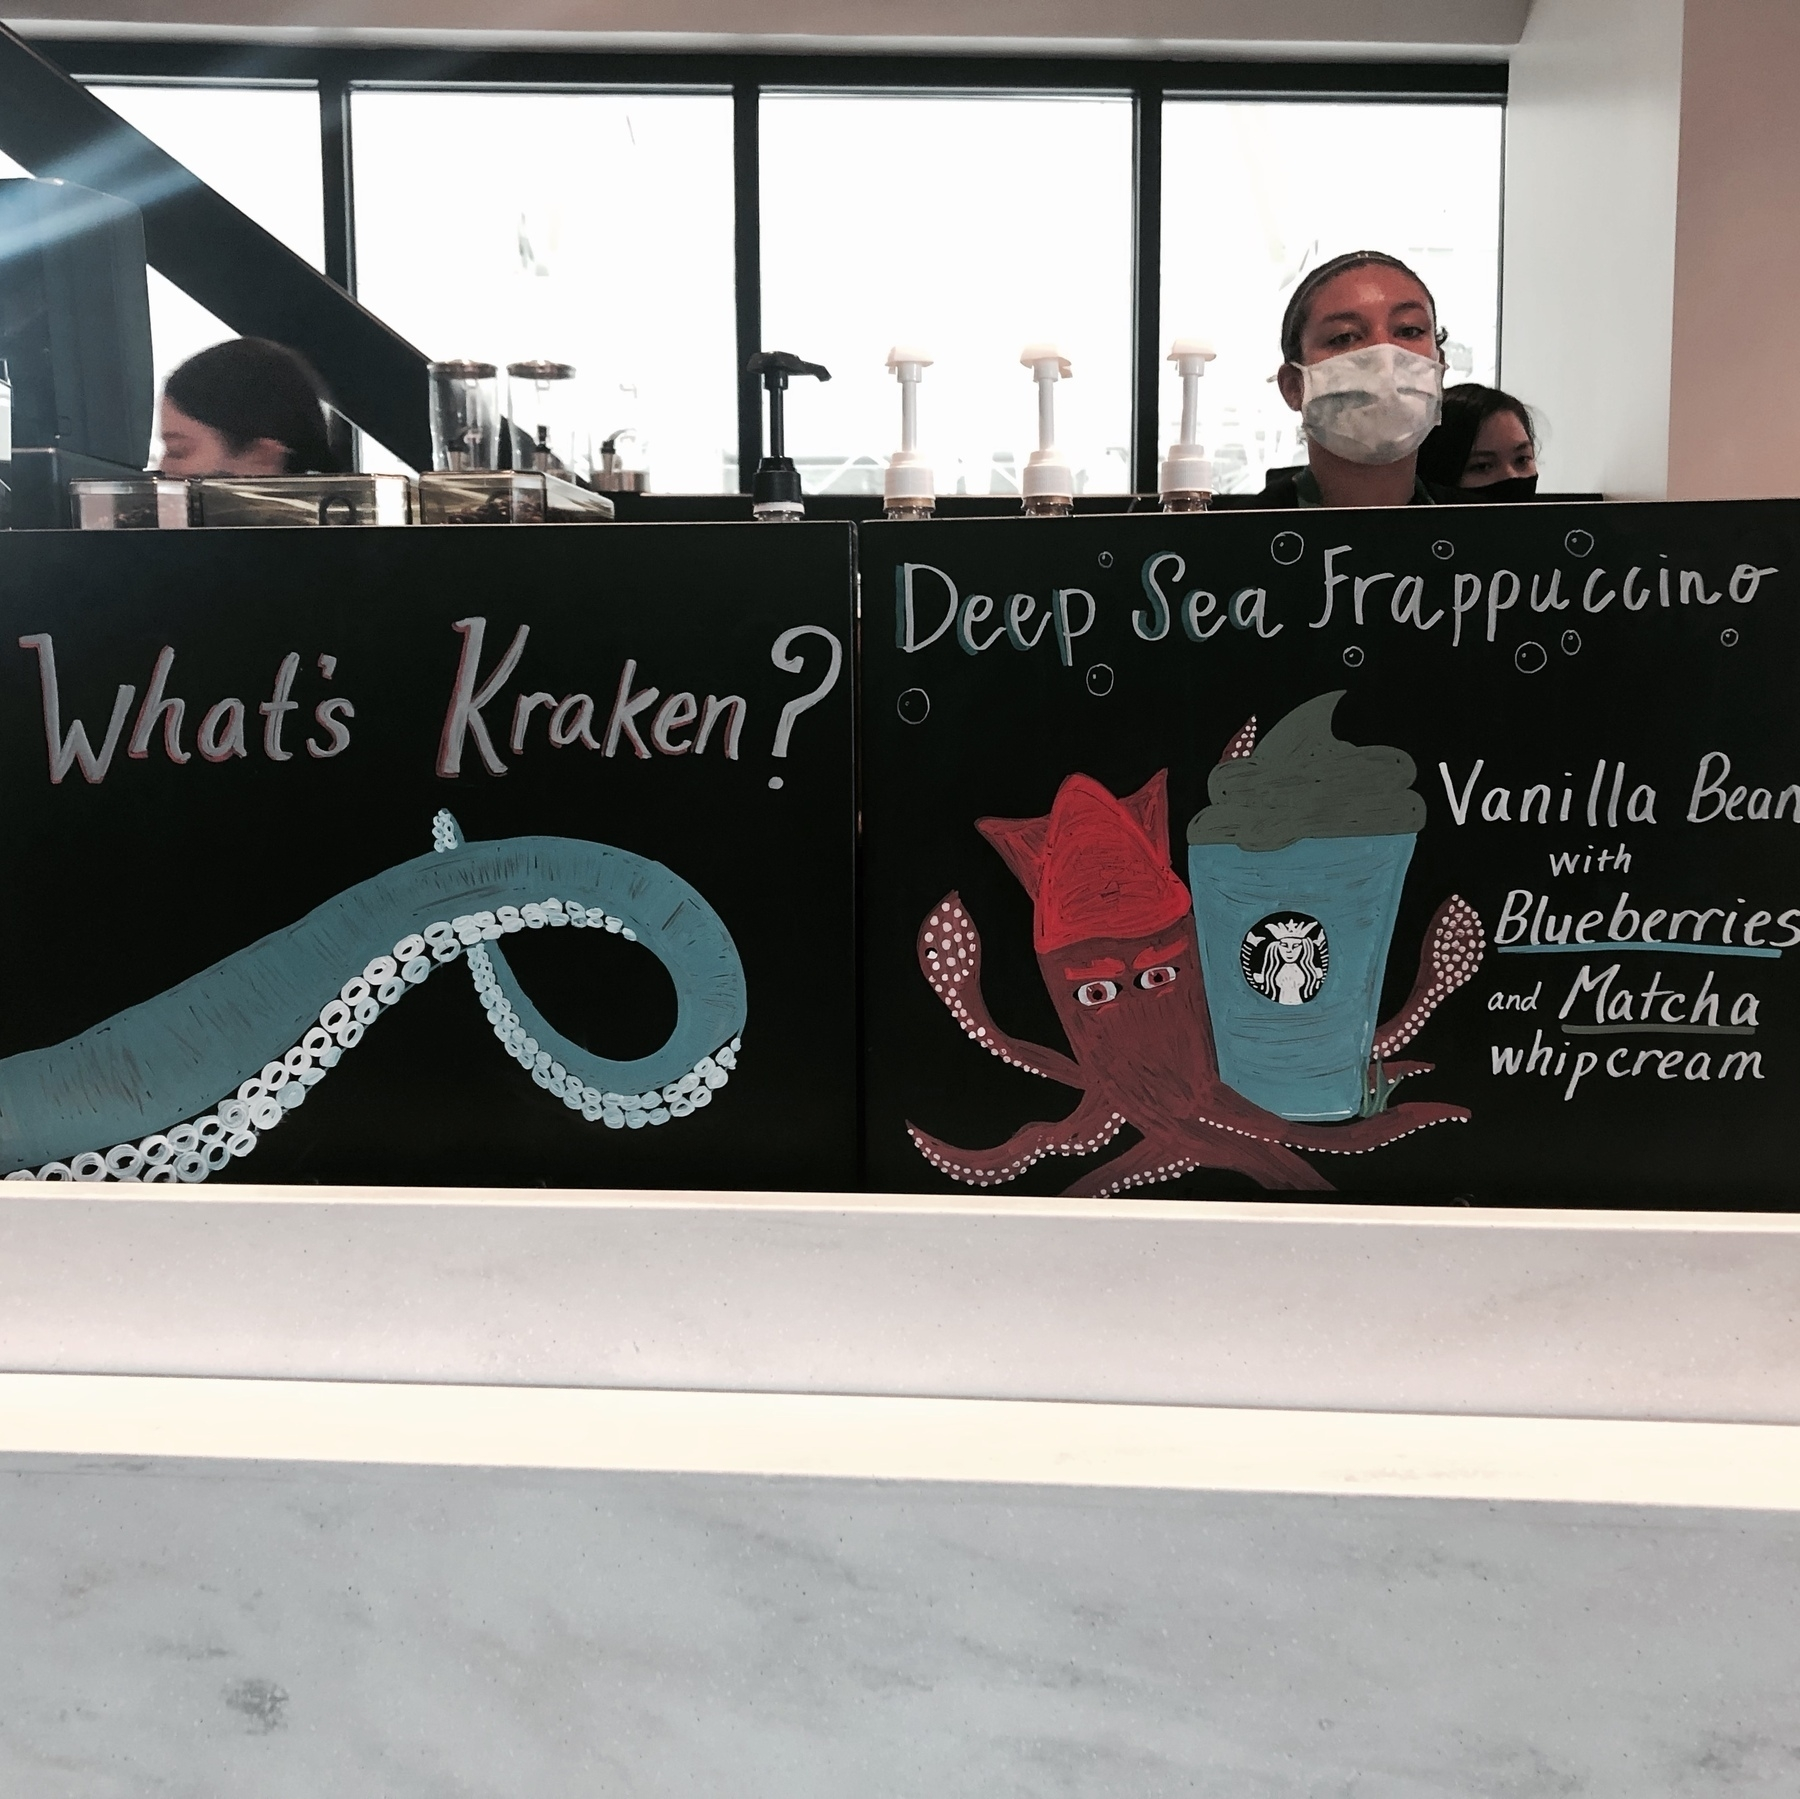 """A starbucks chalkboard asking """"whats Kracken?"""" with a blueberry-macha Frappucino described. The drink is in blue and red Kraken colors."""